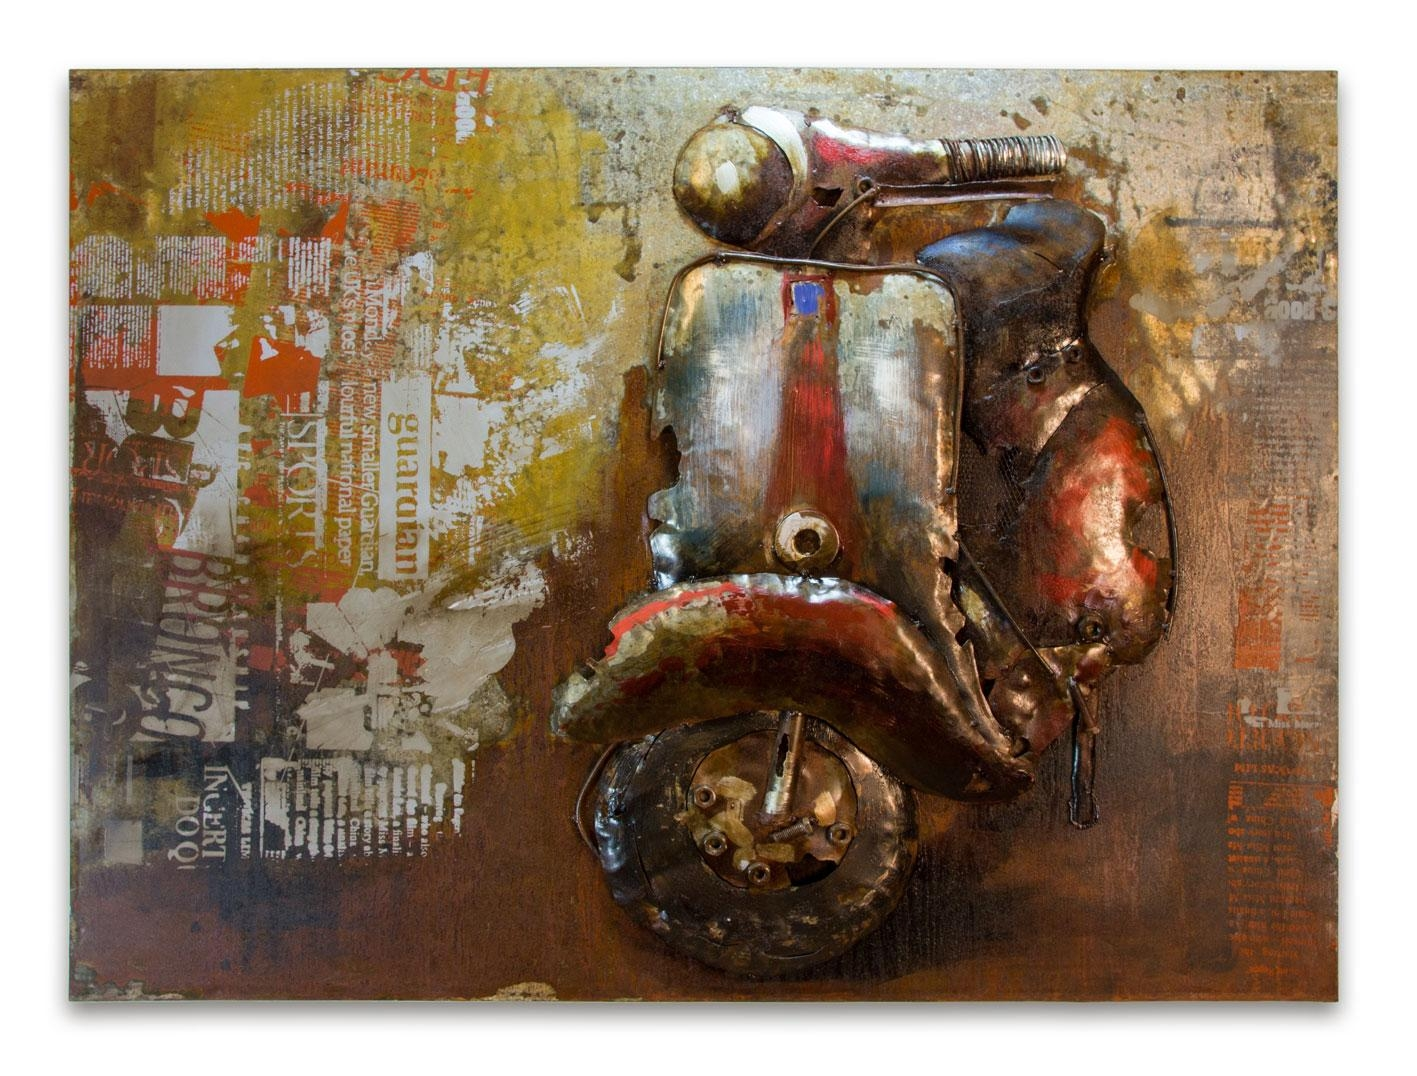 Wall Art Decor: Scooter Crafted Italian Metal Wall Art Handmade Inside Italian Silver Wall Art (View 8 of 20)